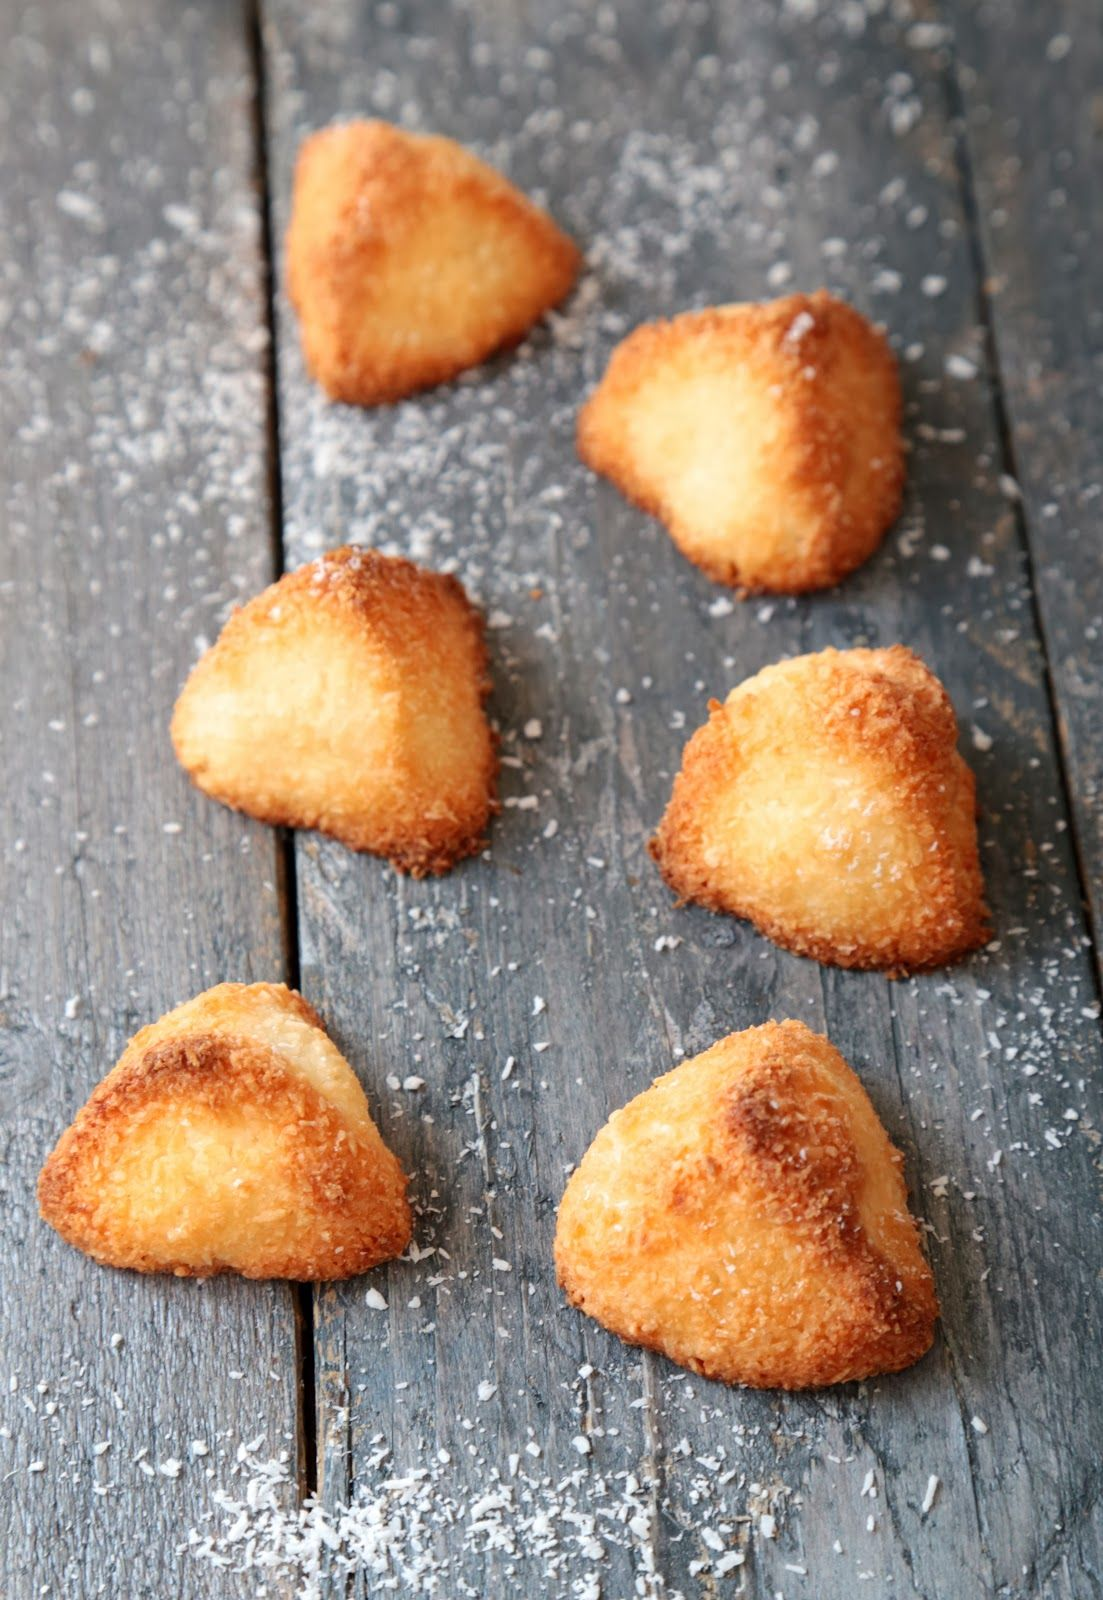 Recette biscuits 2 blancs d'oeuf